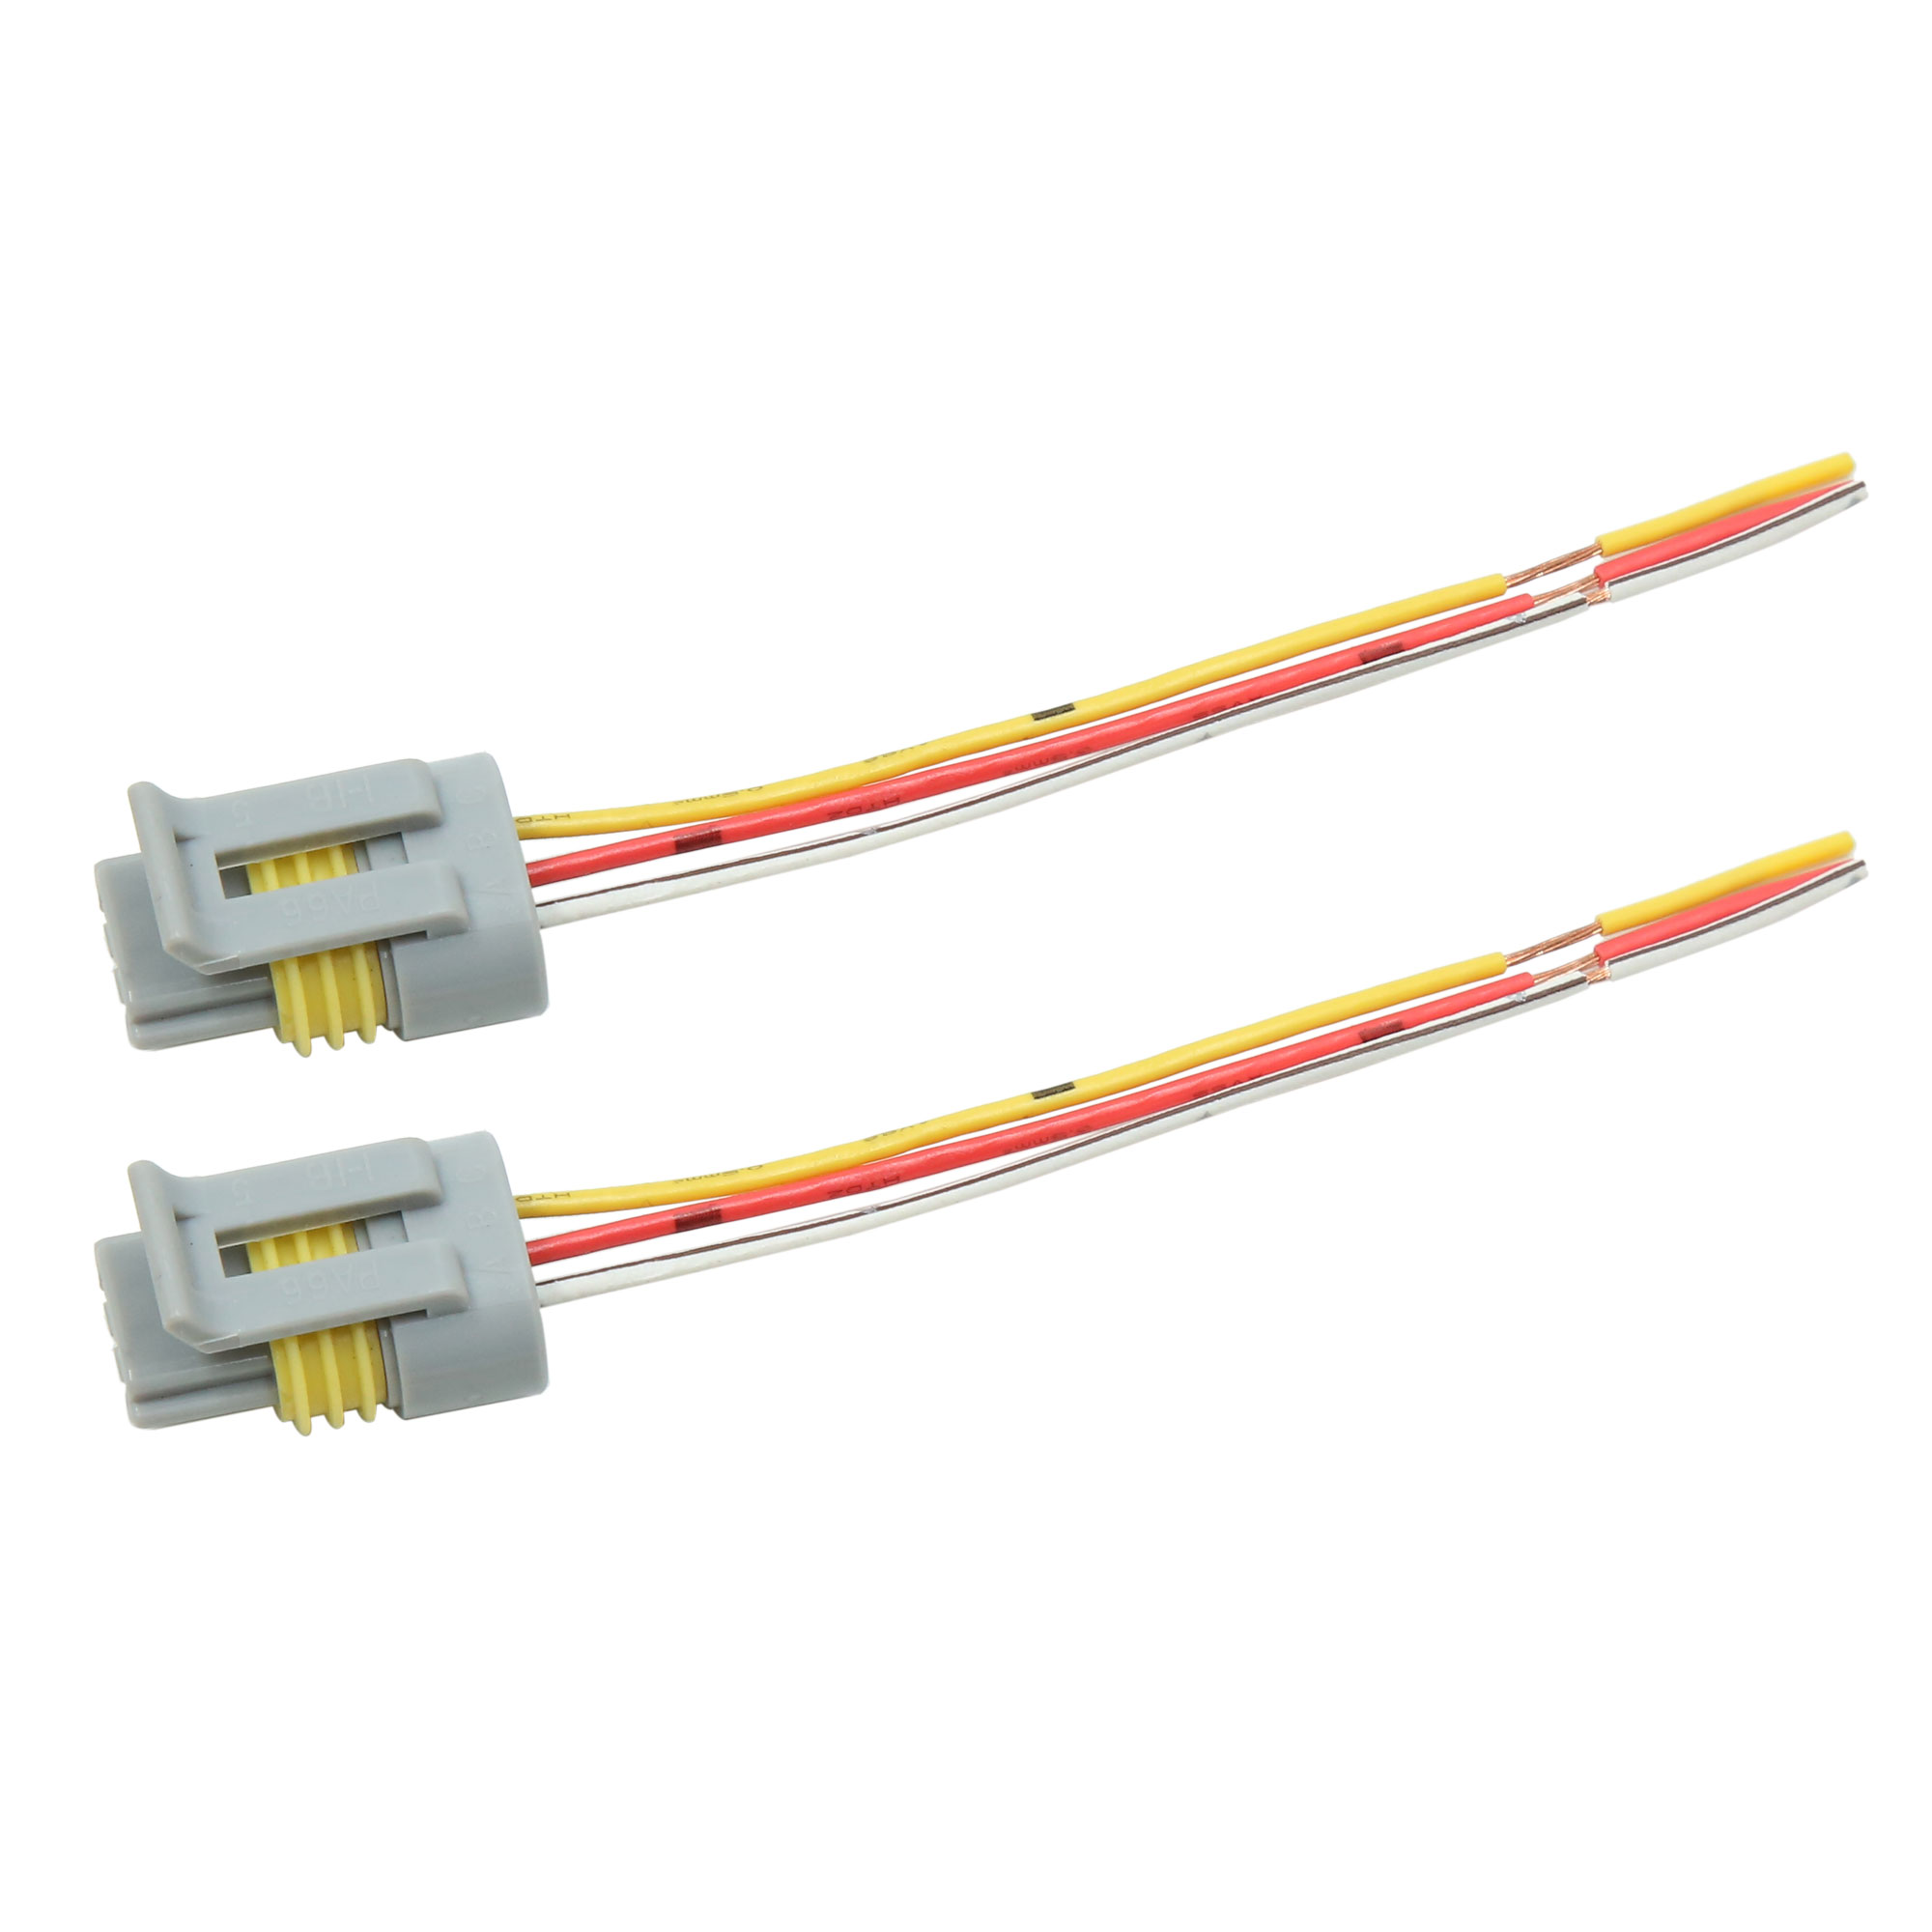 2pcs DC 12V 3 Wires Gray Electric Motor Wiring Harness Connector for Cars -  Walmart.com - Walmart.comWalmart